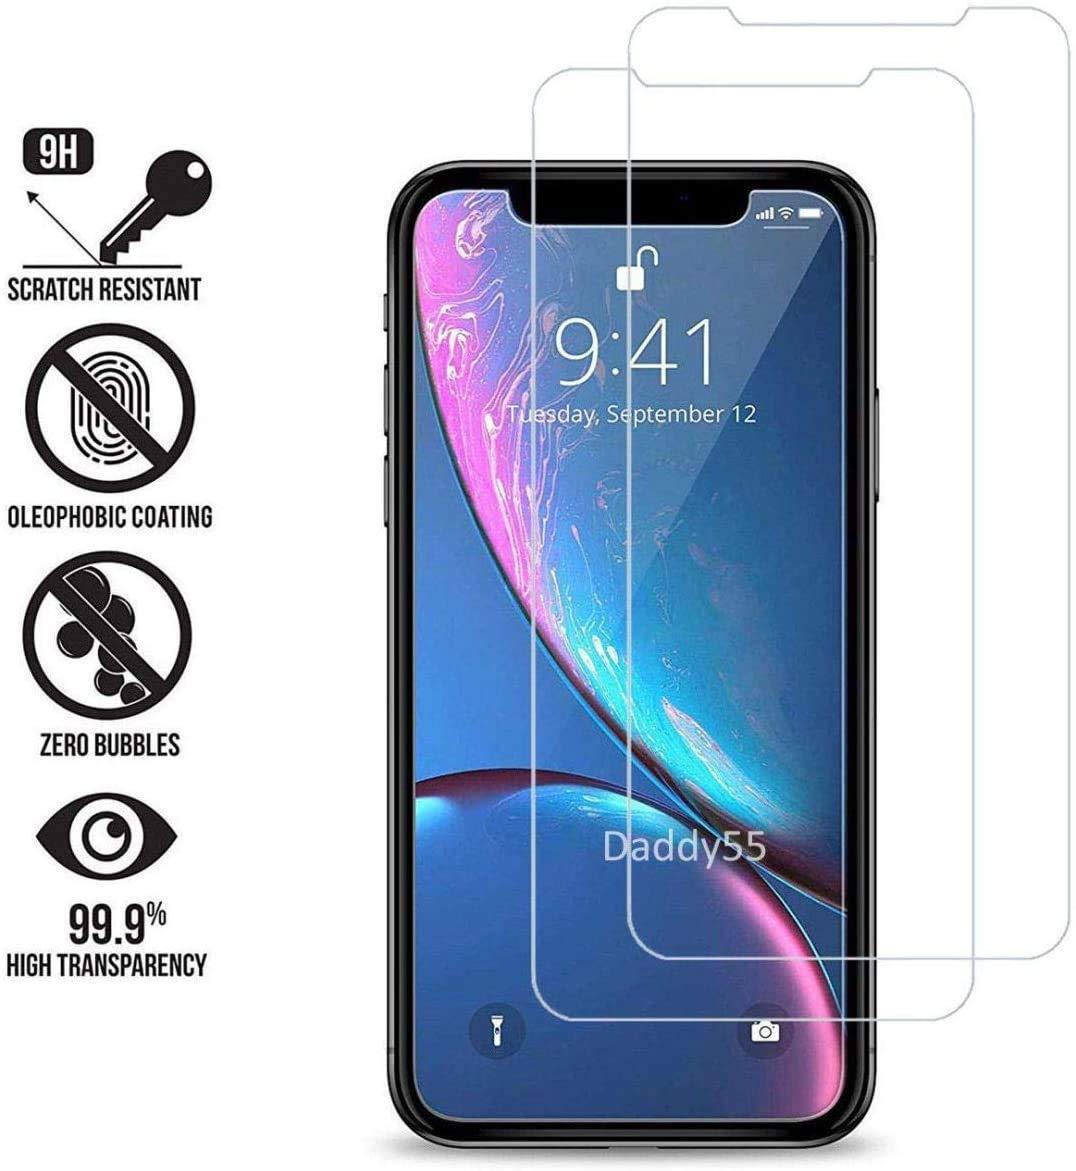 The Grafu Screen Protector for iPhone 11 Pro Max//iPhone Xs Max Ultra Clear Screen Protector Compatible with iPhone 11 Pro Max//iPhone Xs Max Bubble Free 9H Hardness Tempered Glass 4 Pack